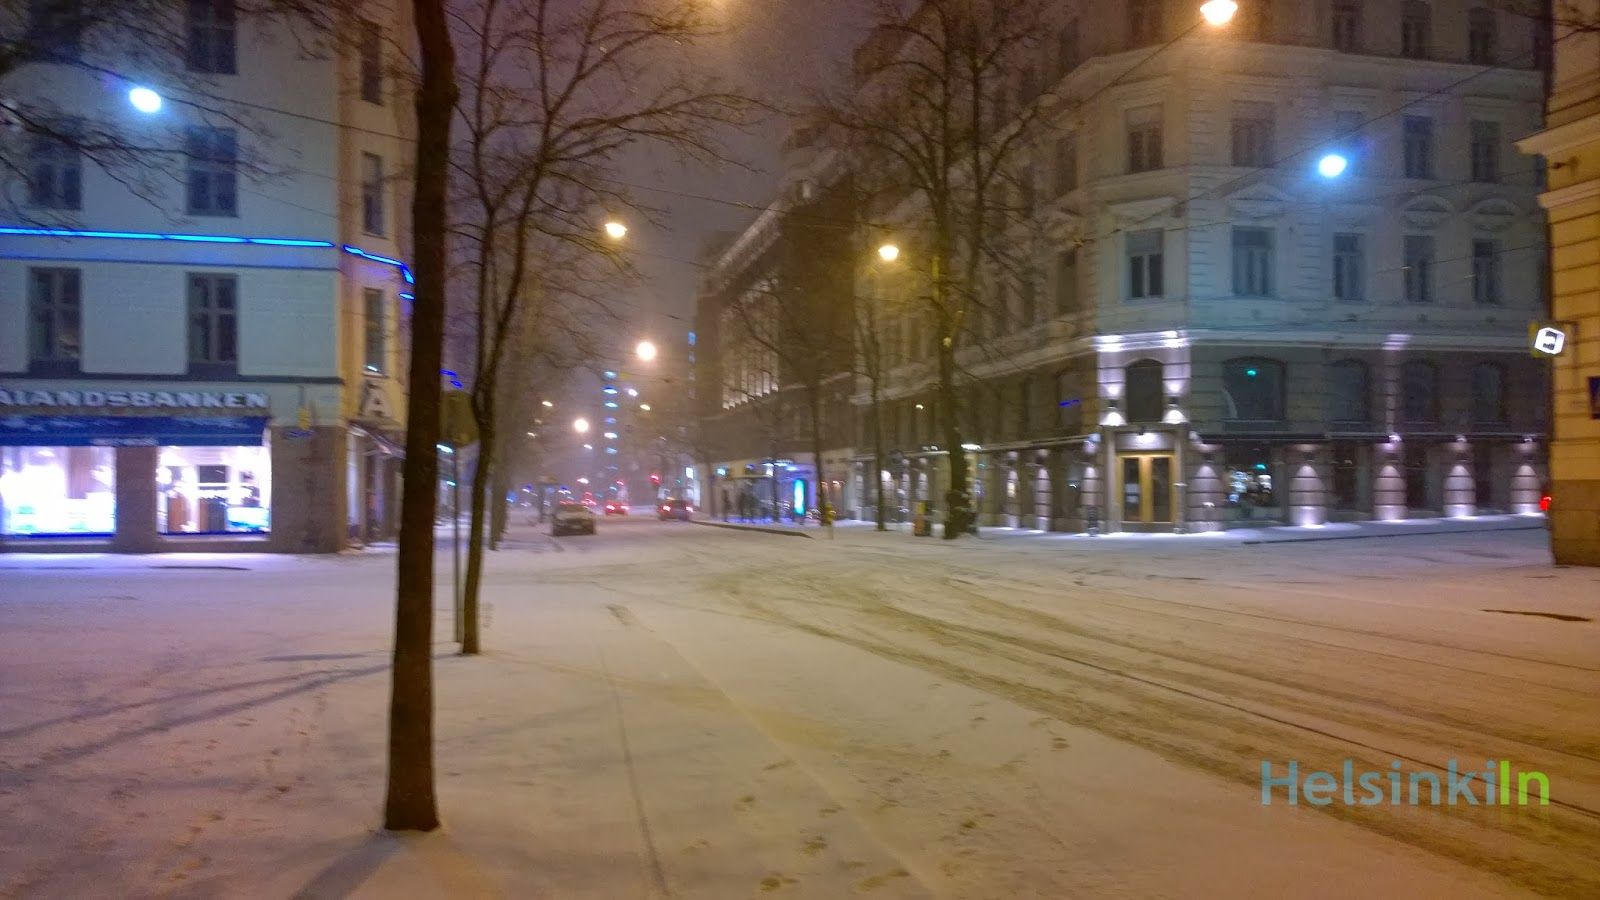 snow during the night